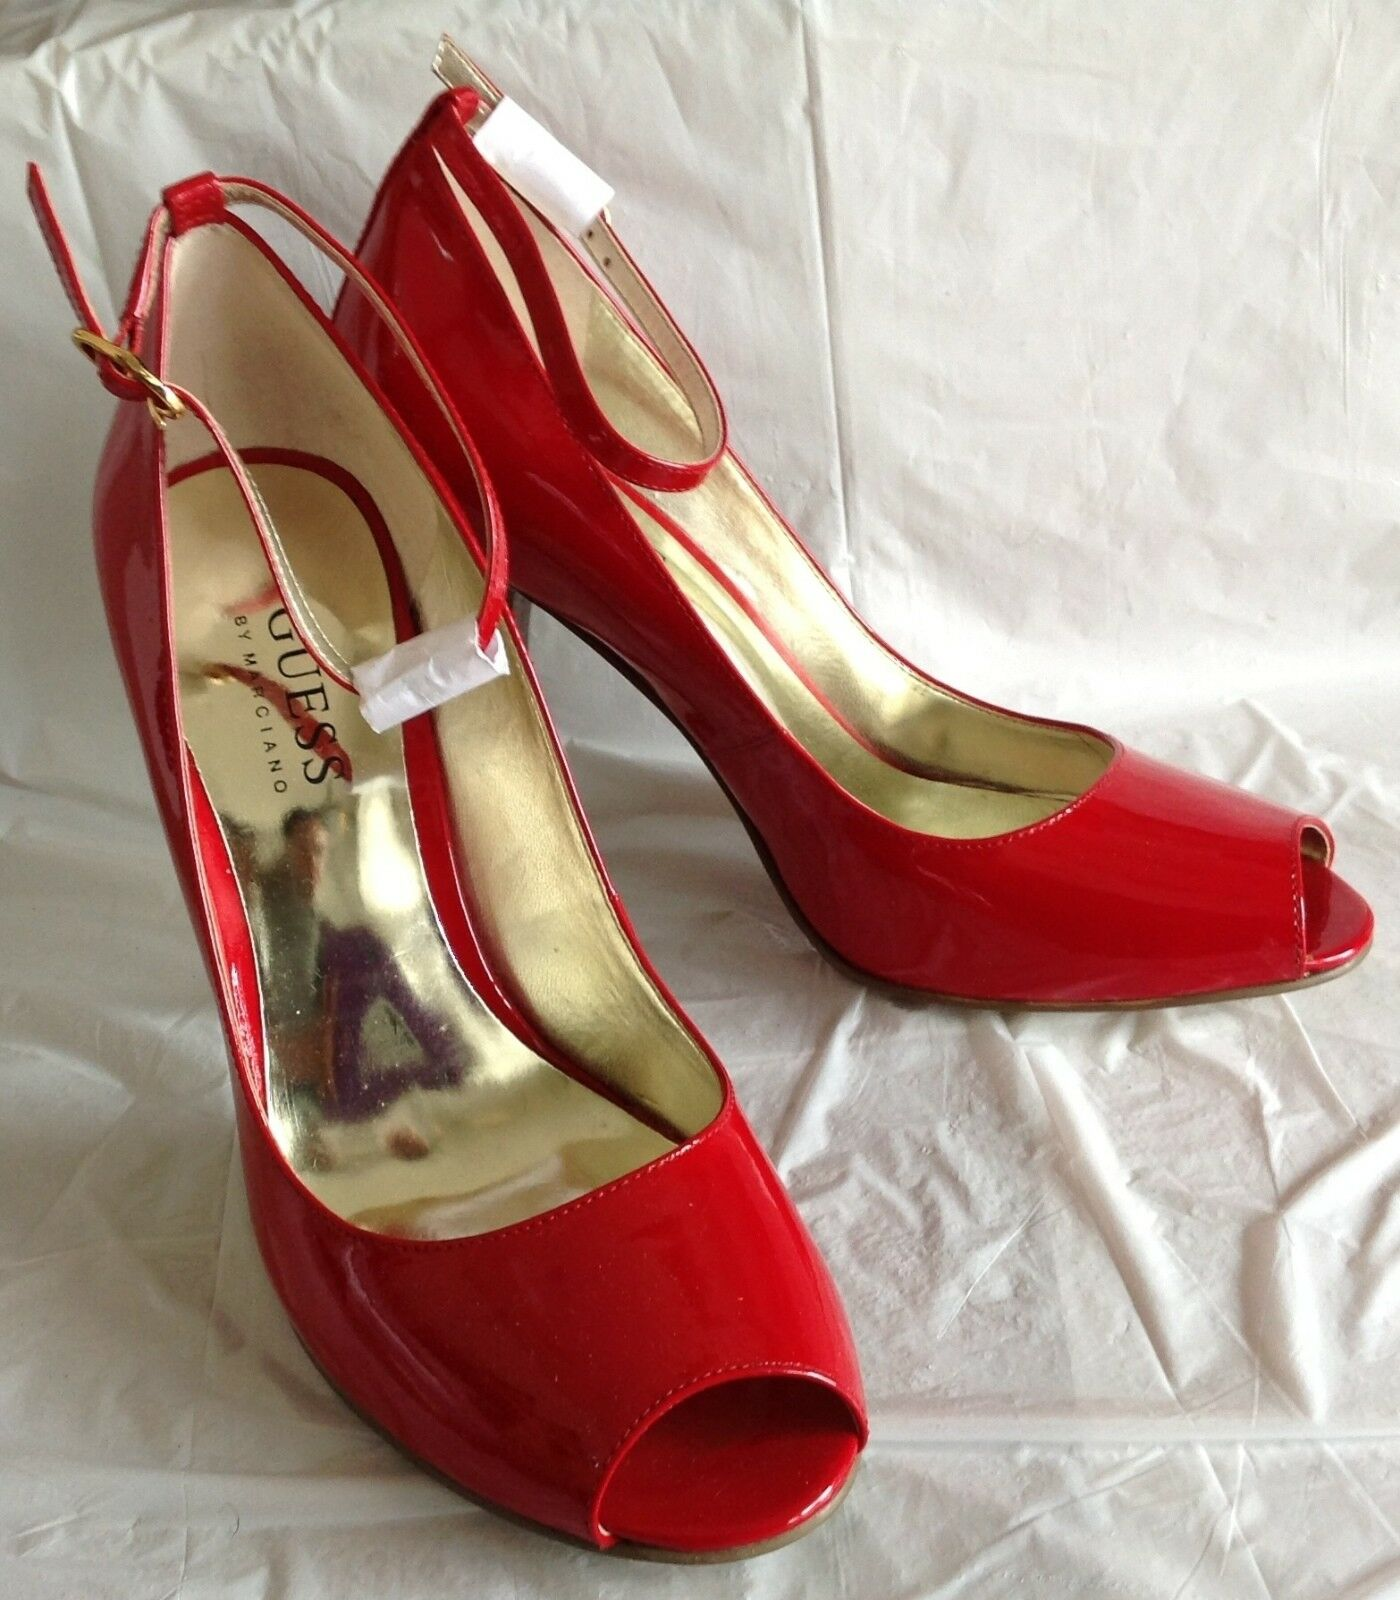 NWOB, NWOB, NWOB, Guess heels, Falballa design, red patent leather, ankle strap, size 7M 9666ef